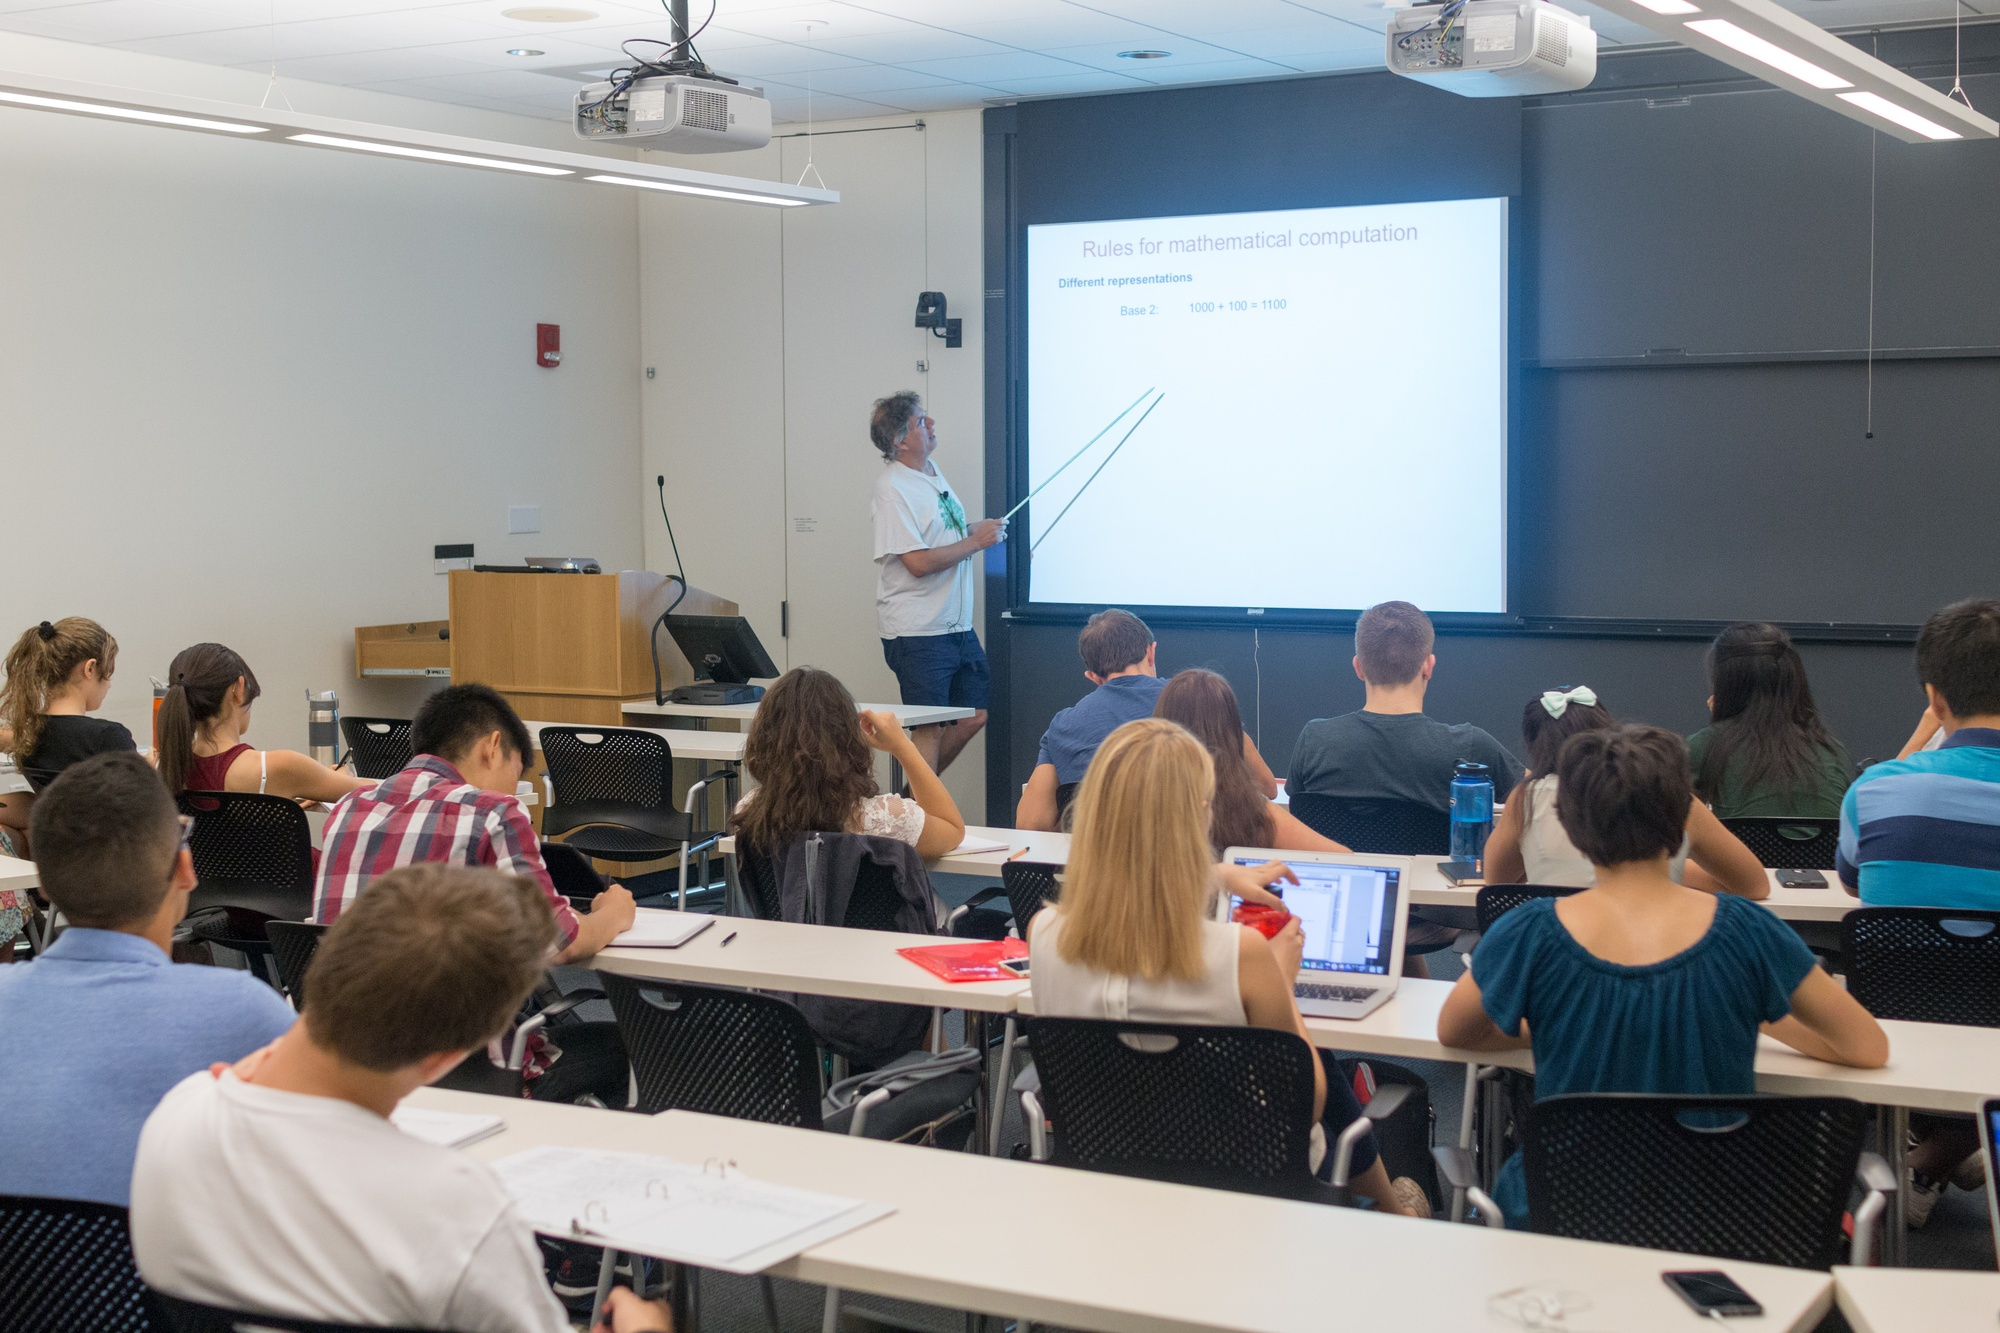 Approximately 25 students attend the second lecture of Life Science 50a, the first half of an intensive two-semester, double course incorporating topics in biology, chemistry, math, computing, and physics.